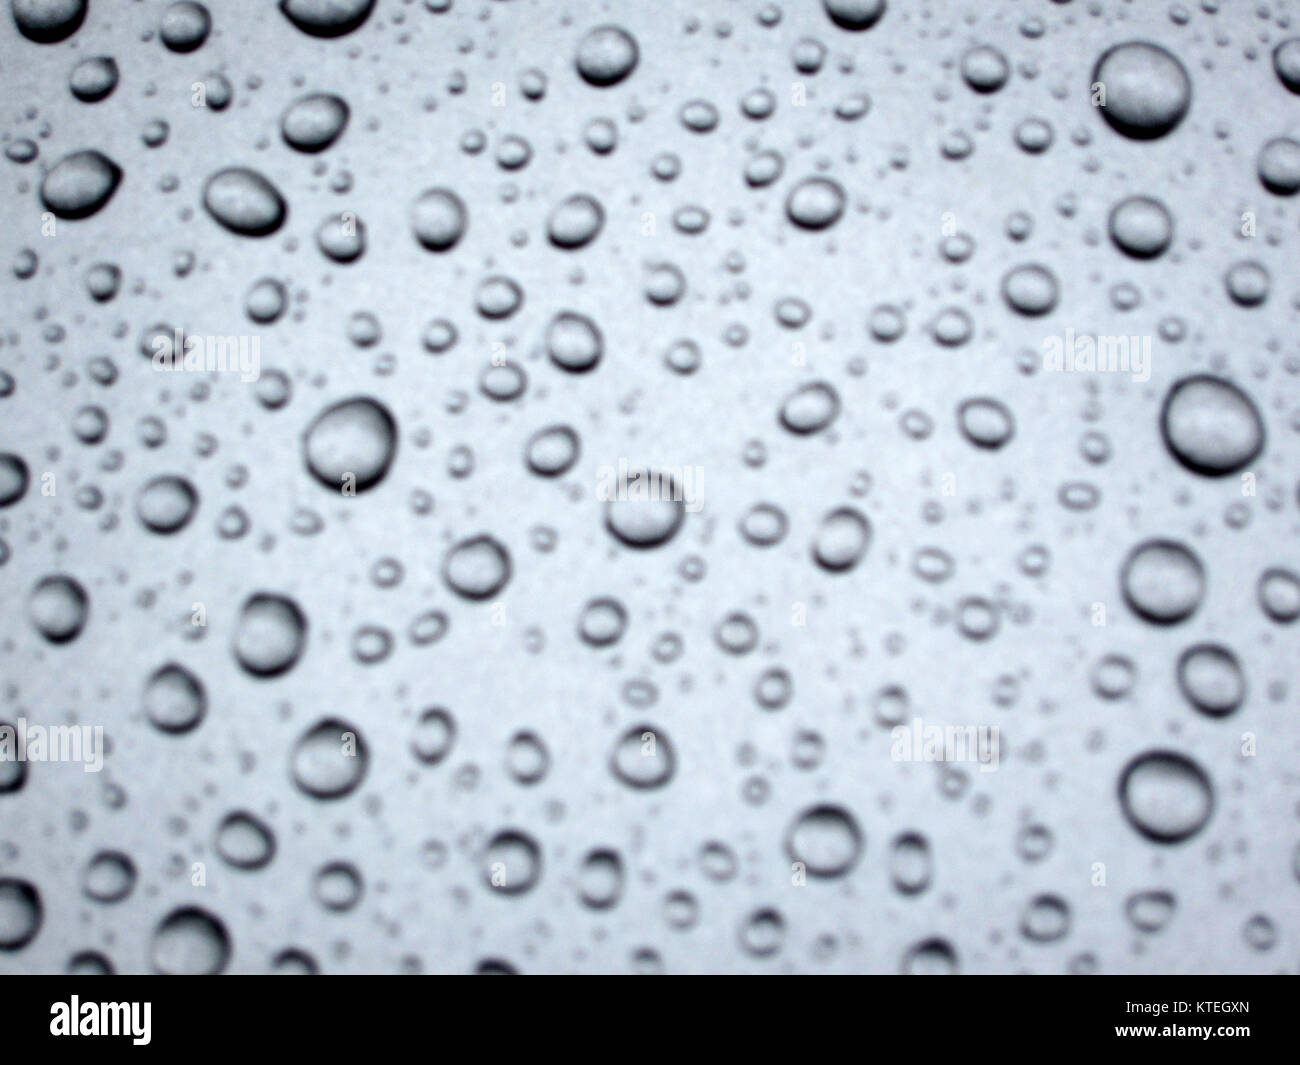 Abstract Blur Image Of A Water Bubbles On A Silver Background Stock Photo Alamy